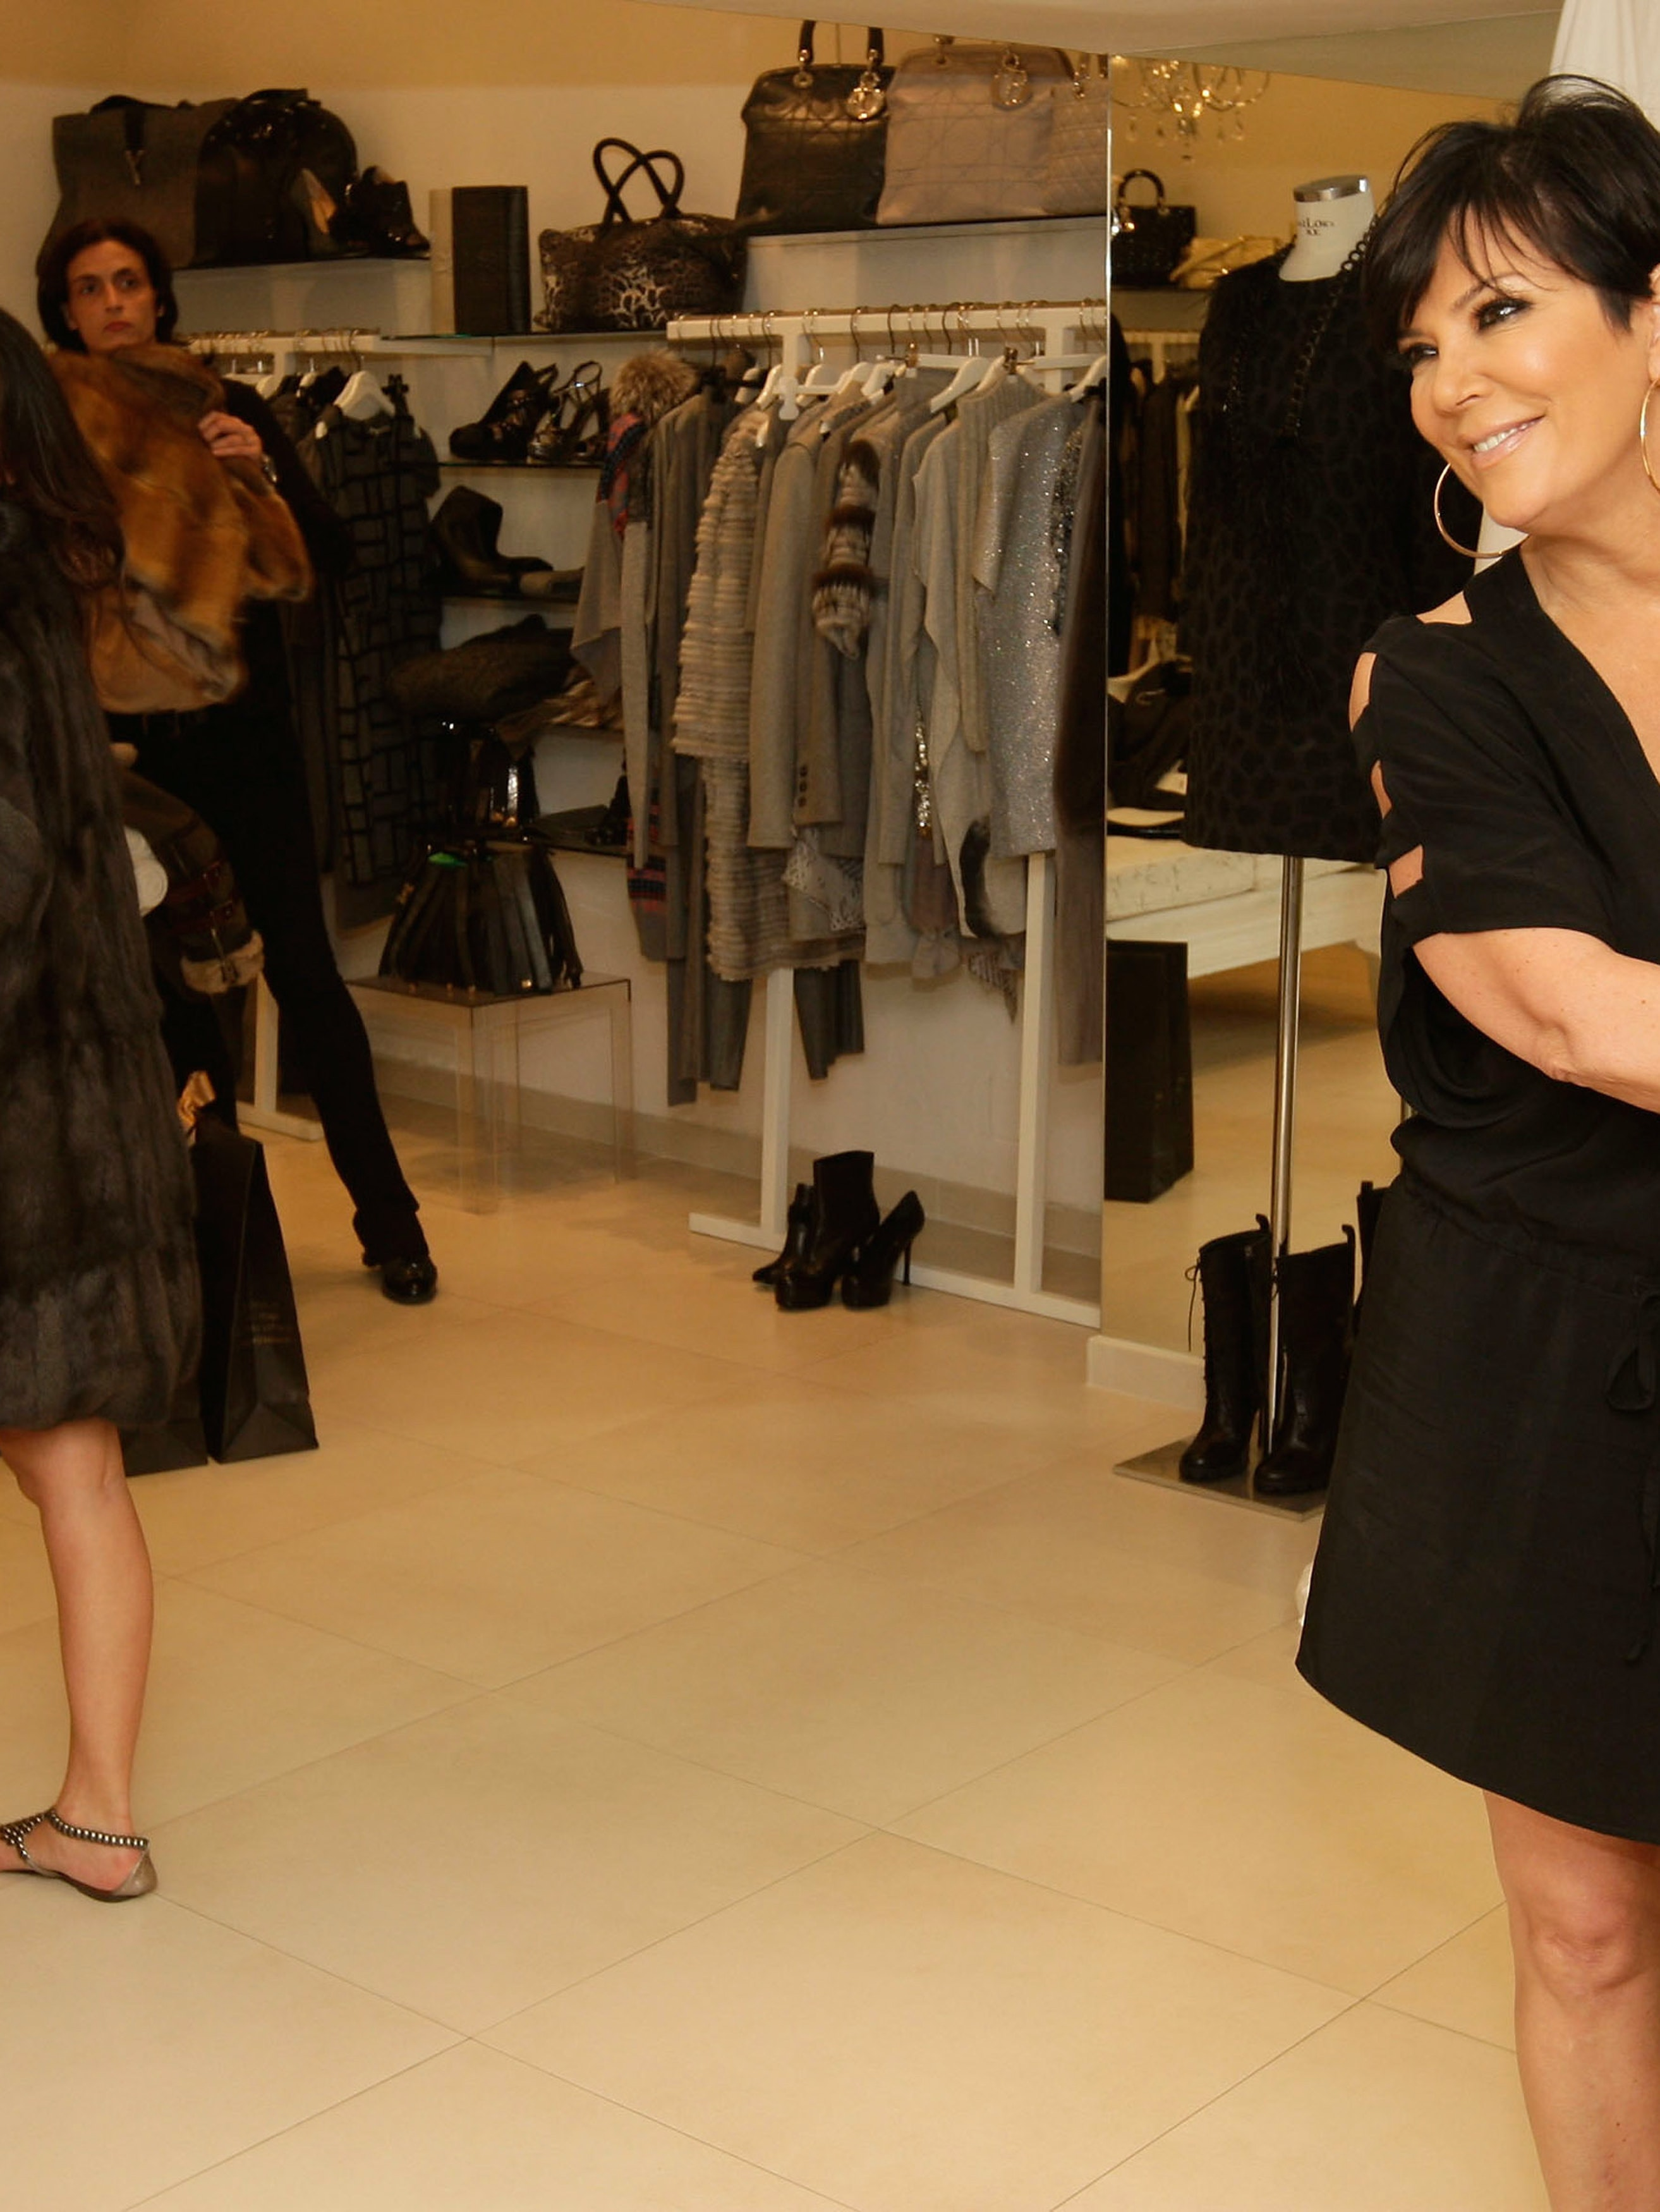 CAPRI, ITALY - SEPTEMBER 18:  Kim Kardashian and Kris Jenner are seen shopping at the Grey Flanel shop on September 18, 2010 in Capri, Italy.  (Photo by Getty Images/Getty Images)